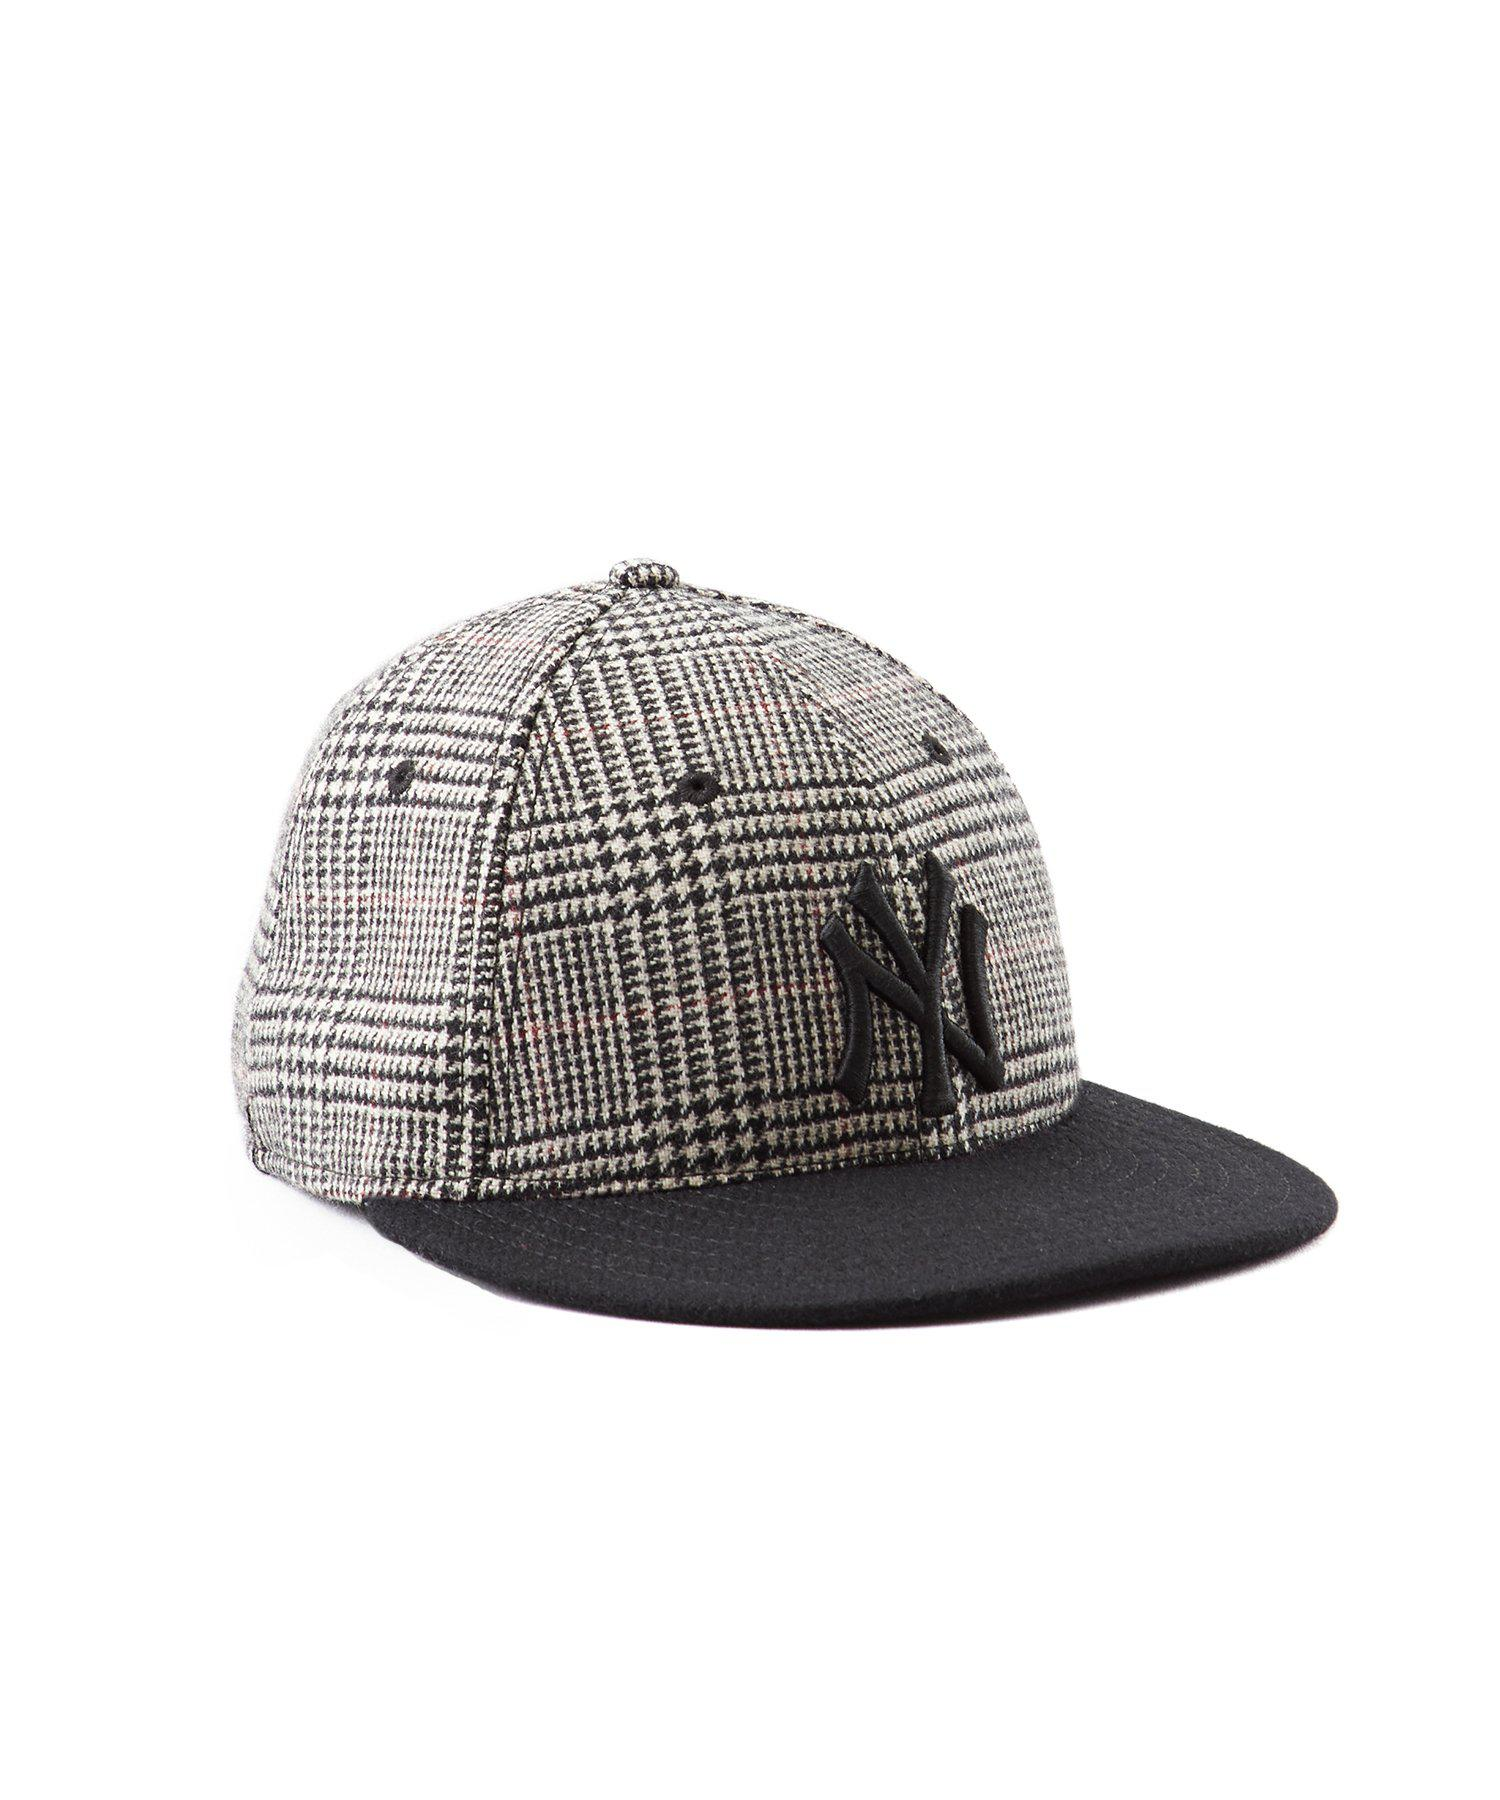 c741e51f9de Lyst - NEW ERA HATS Ny Yankees Glen Plaid Wool Hat in Gray for Men